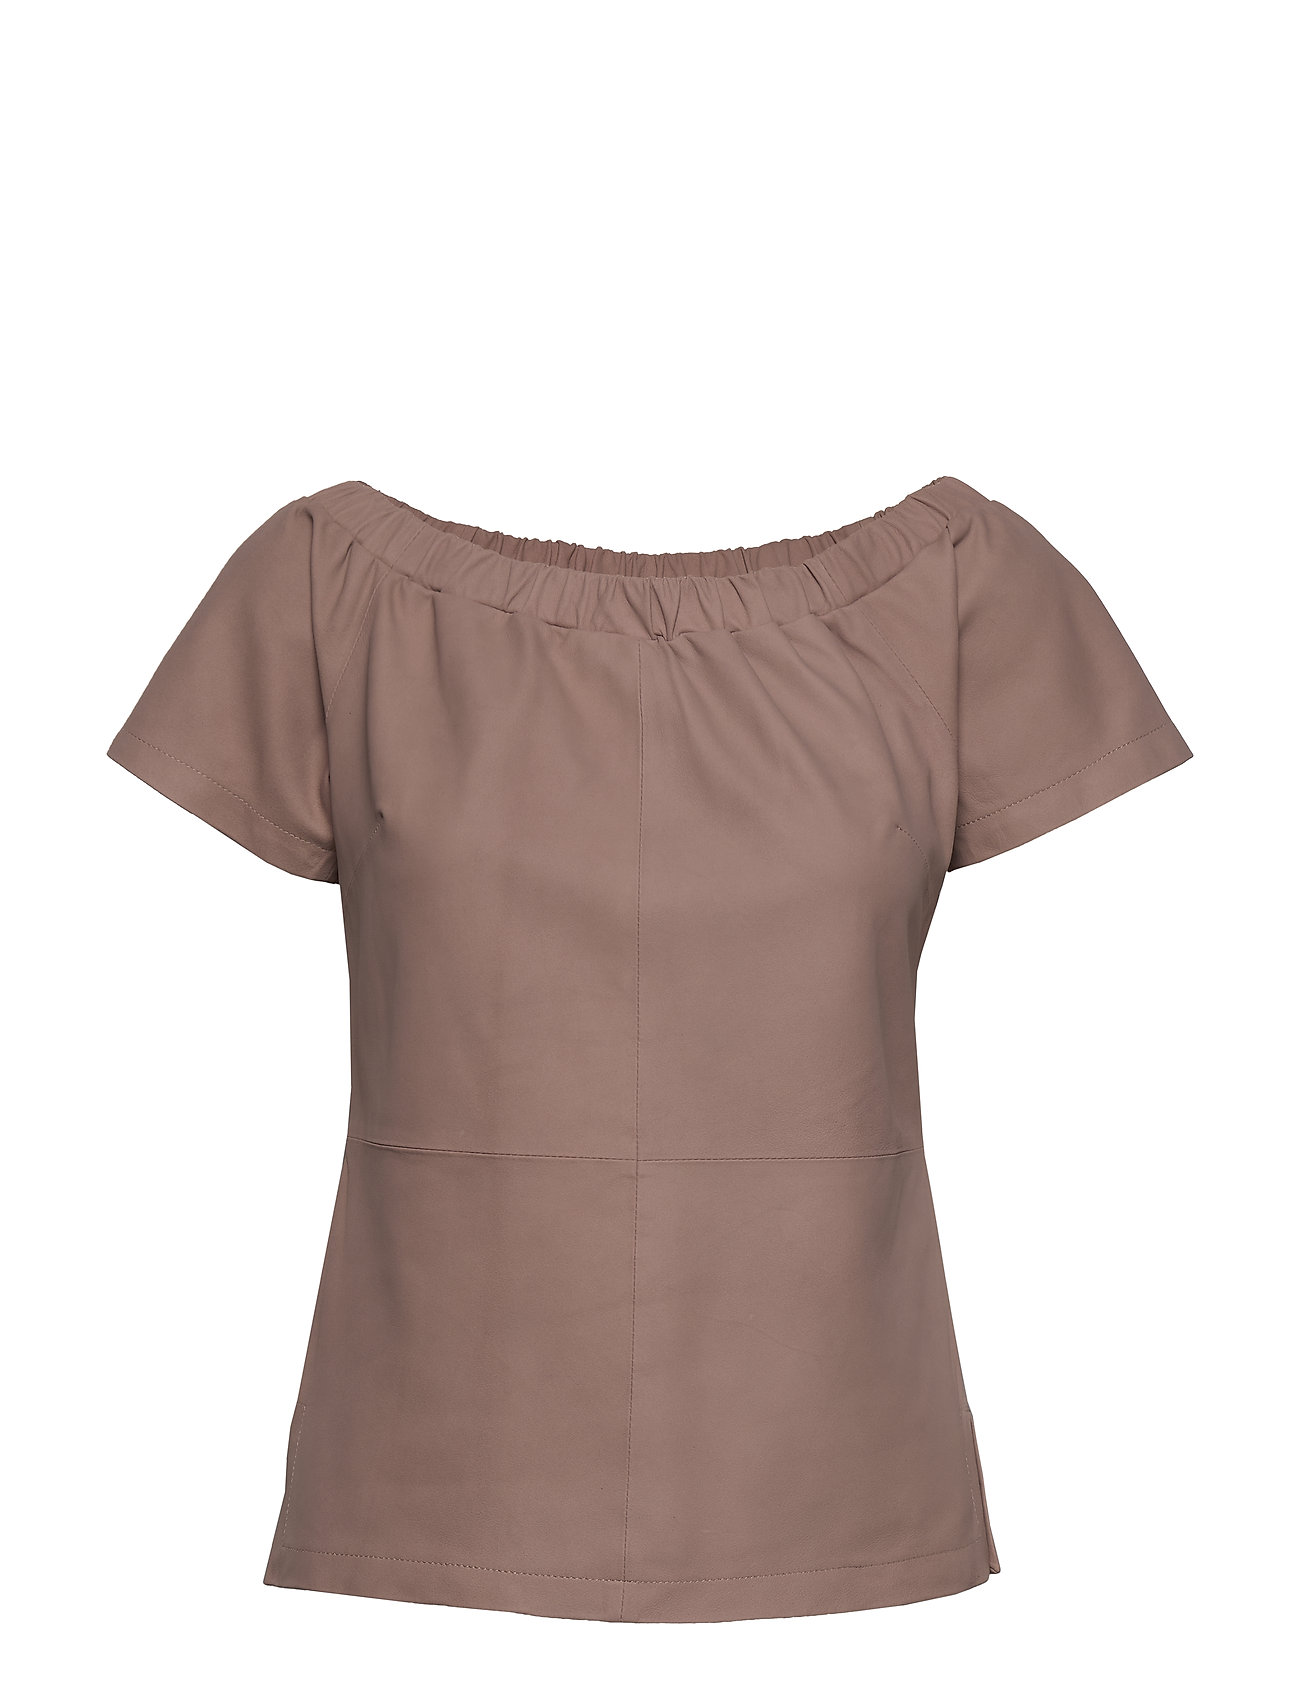 DEPECHE Top with short sleeves - DUSTY ROSE